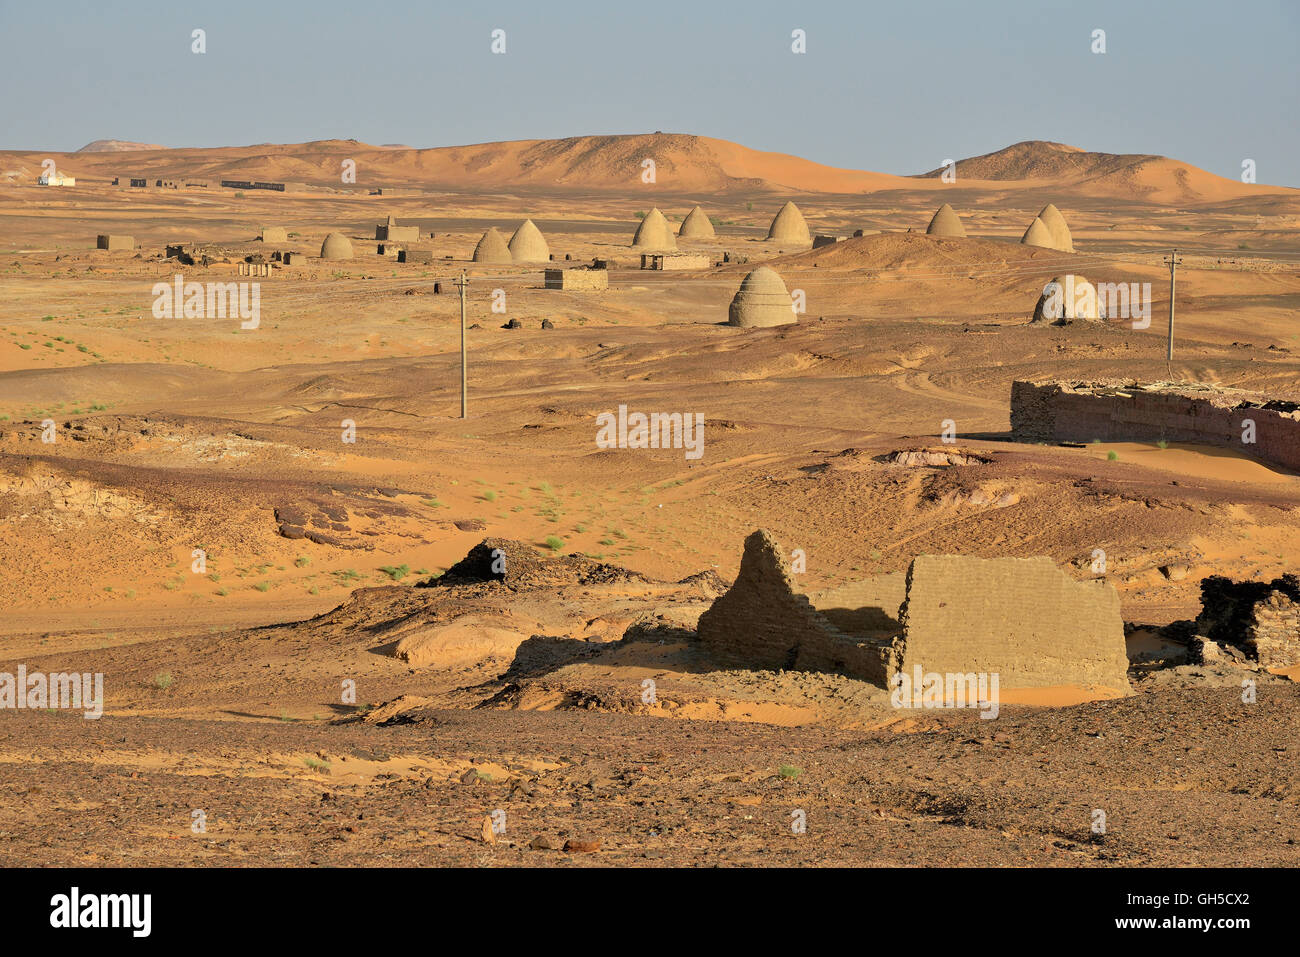 geography / travel, Sudan, graves, as mentioned qubbas, dome-shaped mausoleum of Saint or great hang together, olden - Stock Image